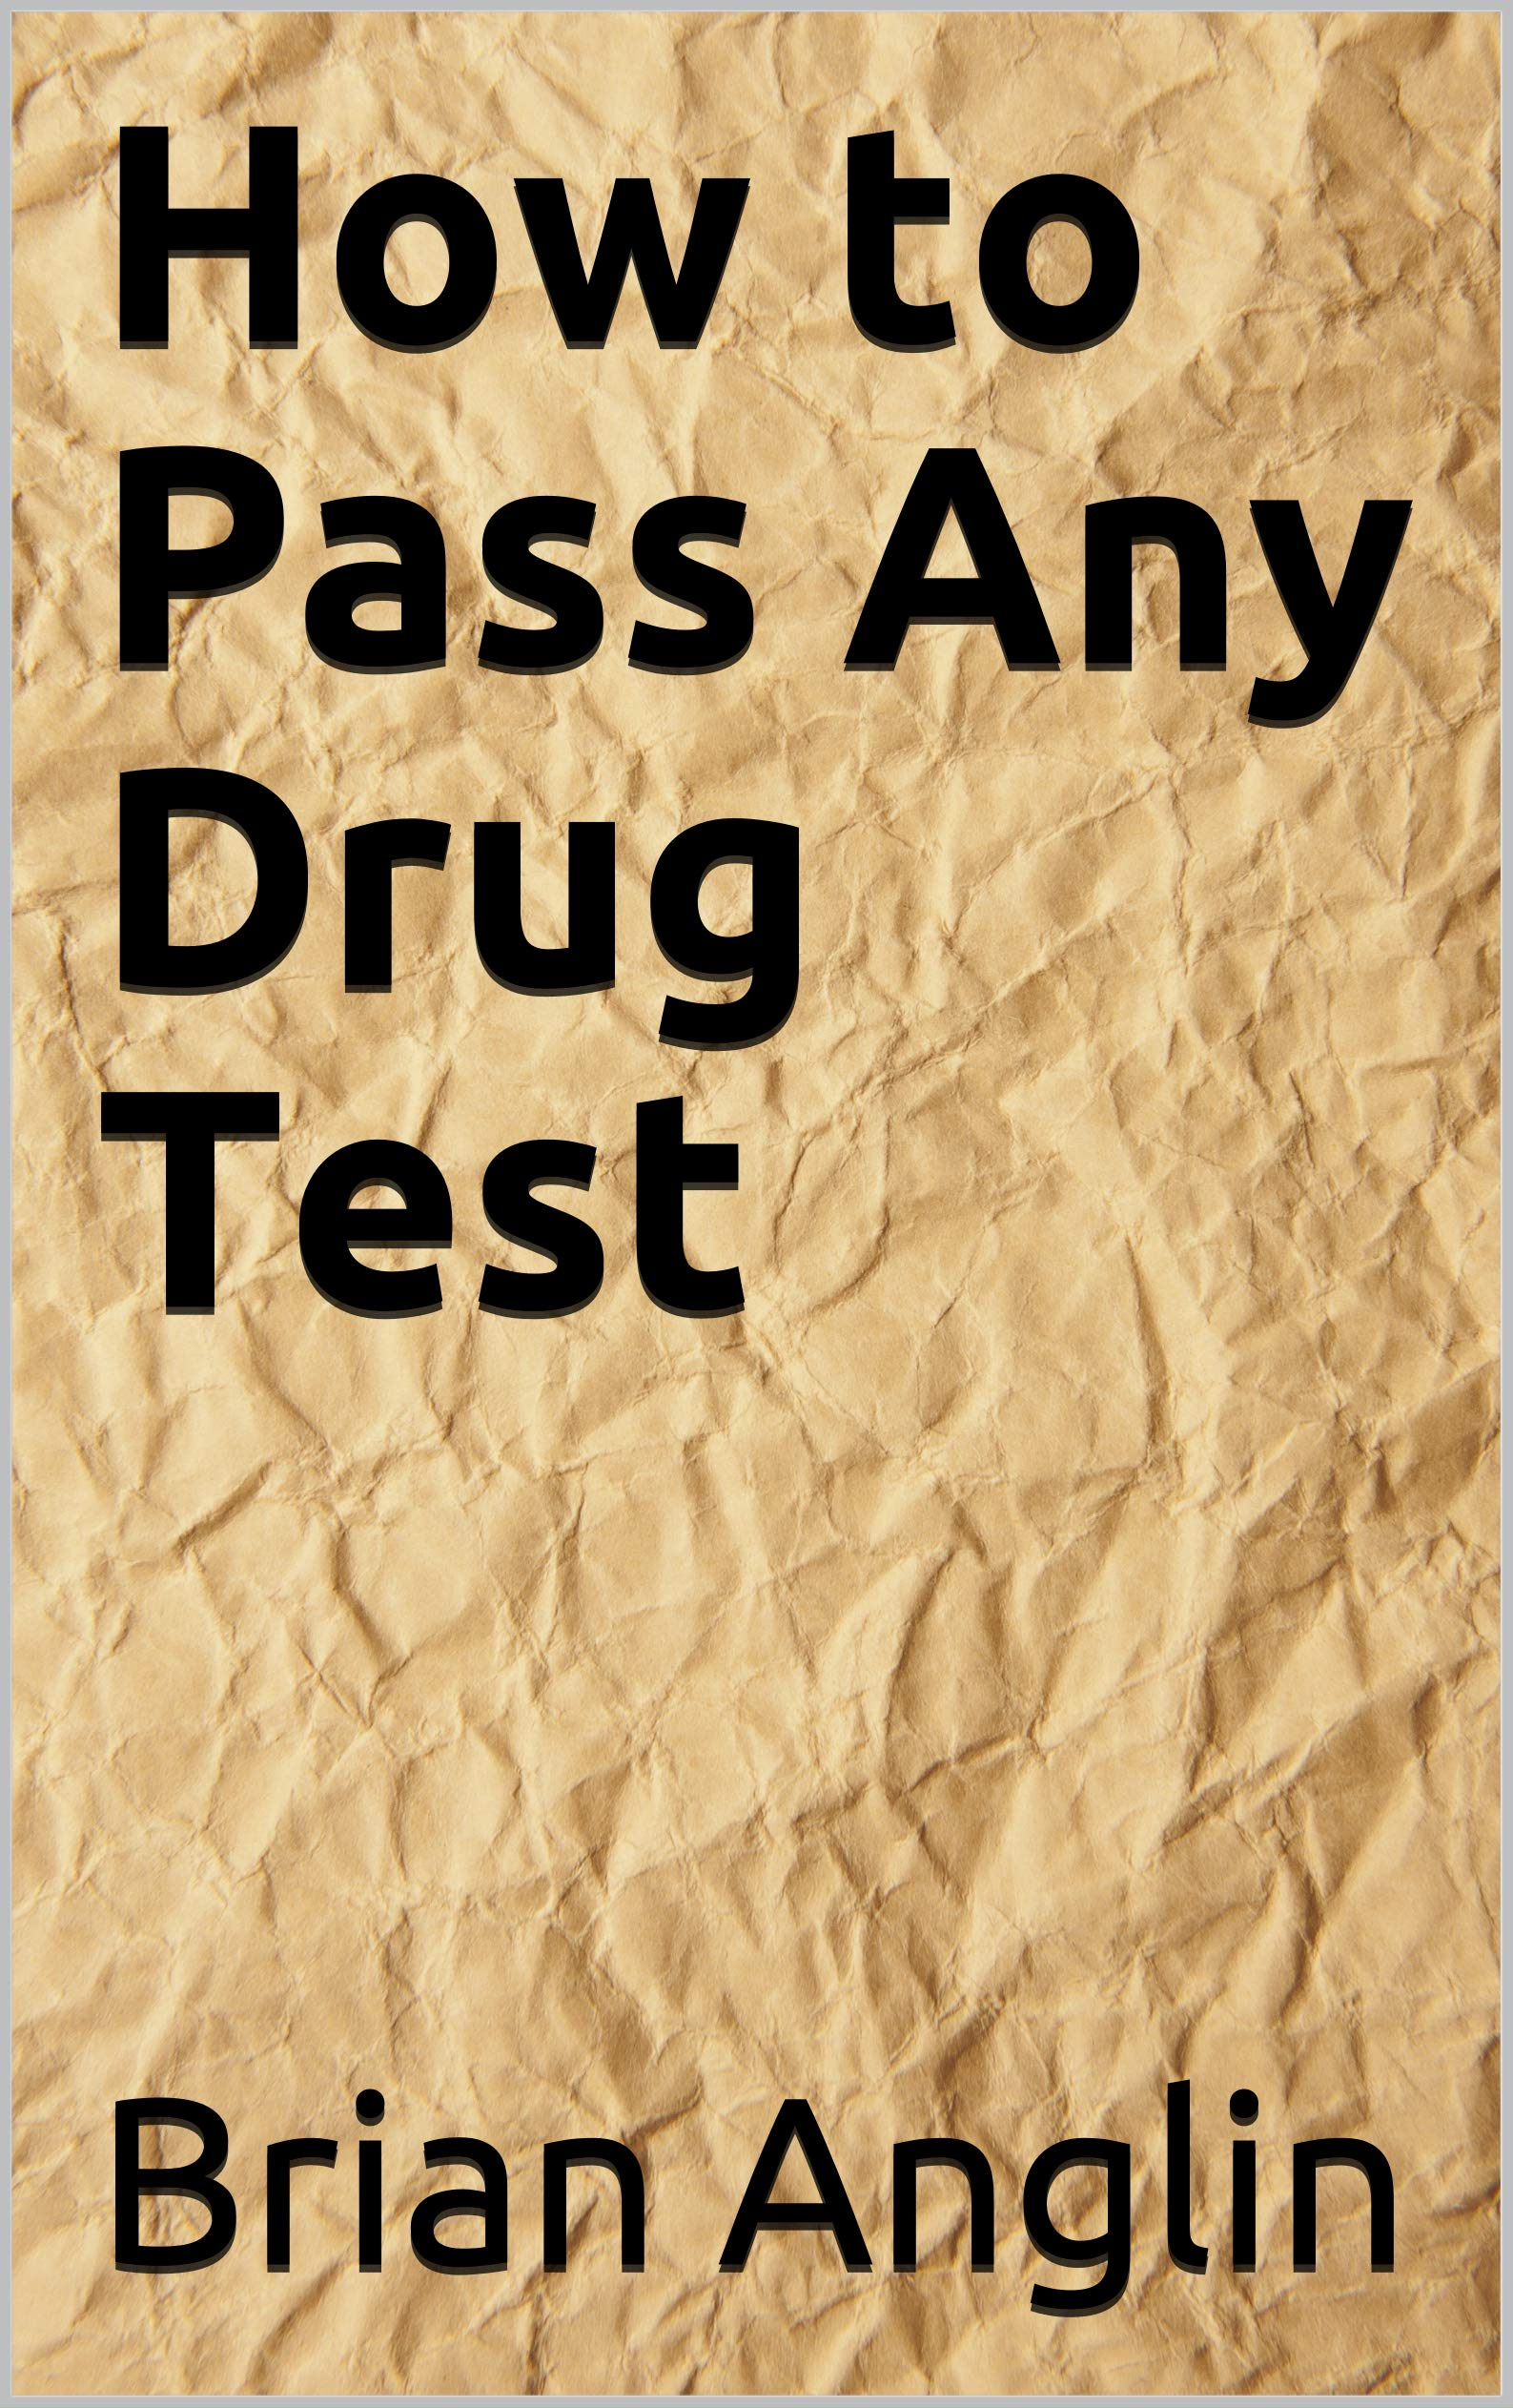 How to Pass Any Drug Test